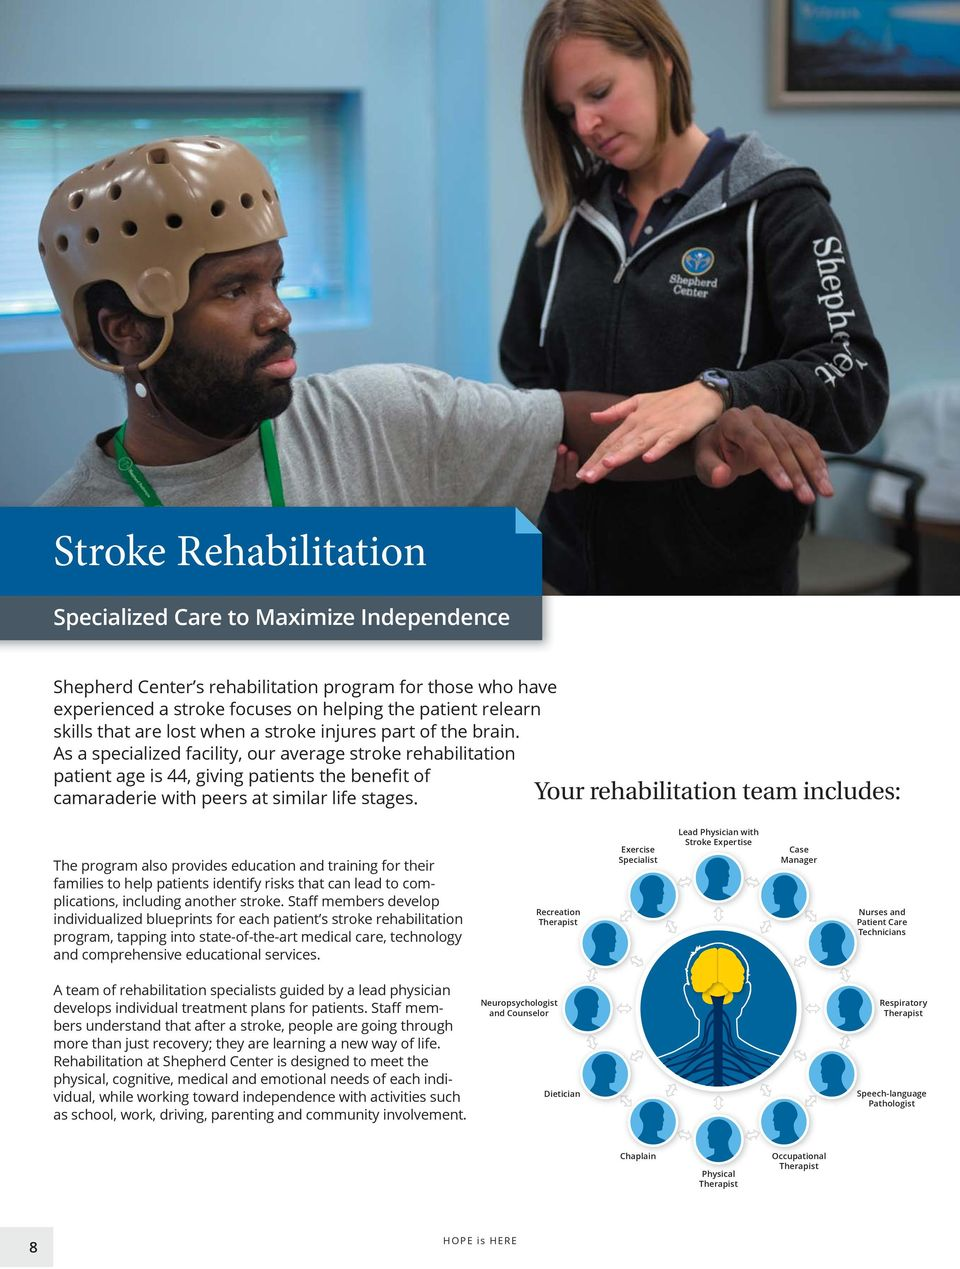 Your rehabilitation team includes: The program also provides education and training for their families to help patients identify risks that can lead to com- individualized blueprints for each patient